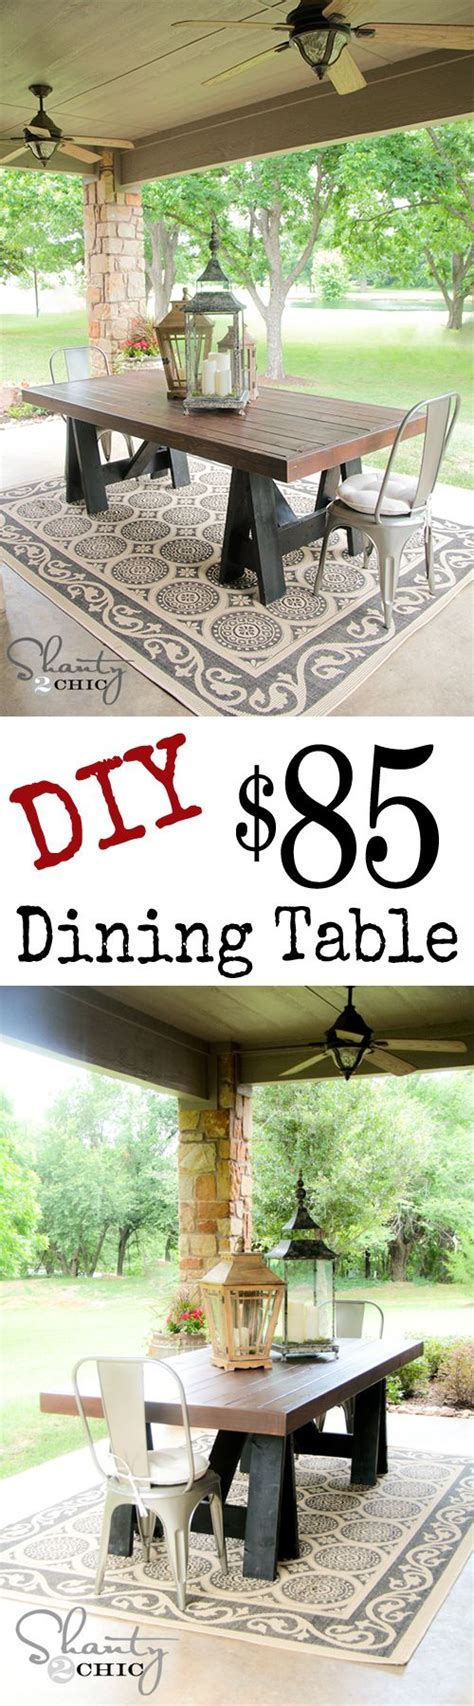 Diy Outdoor Dining Table Diy Pottery Barn Dining Table Shanty2chic Back Yard Oasis